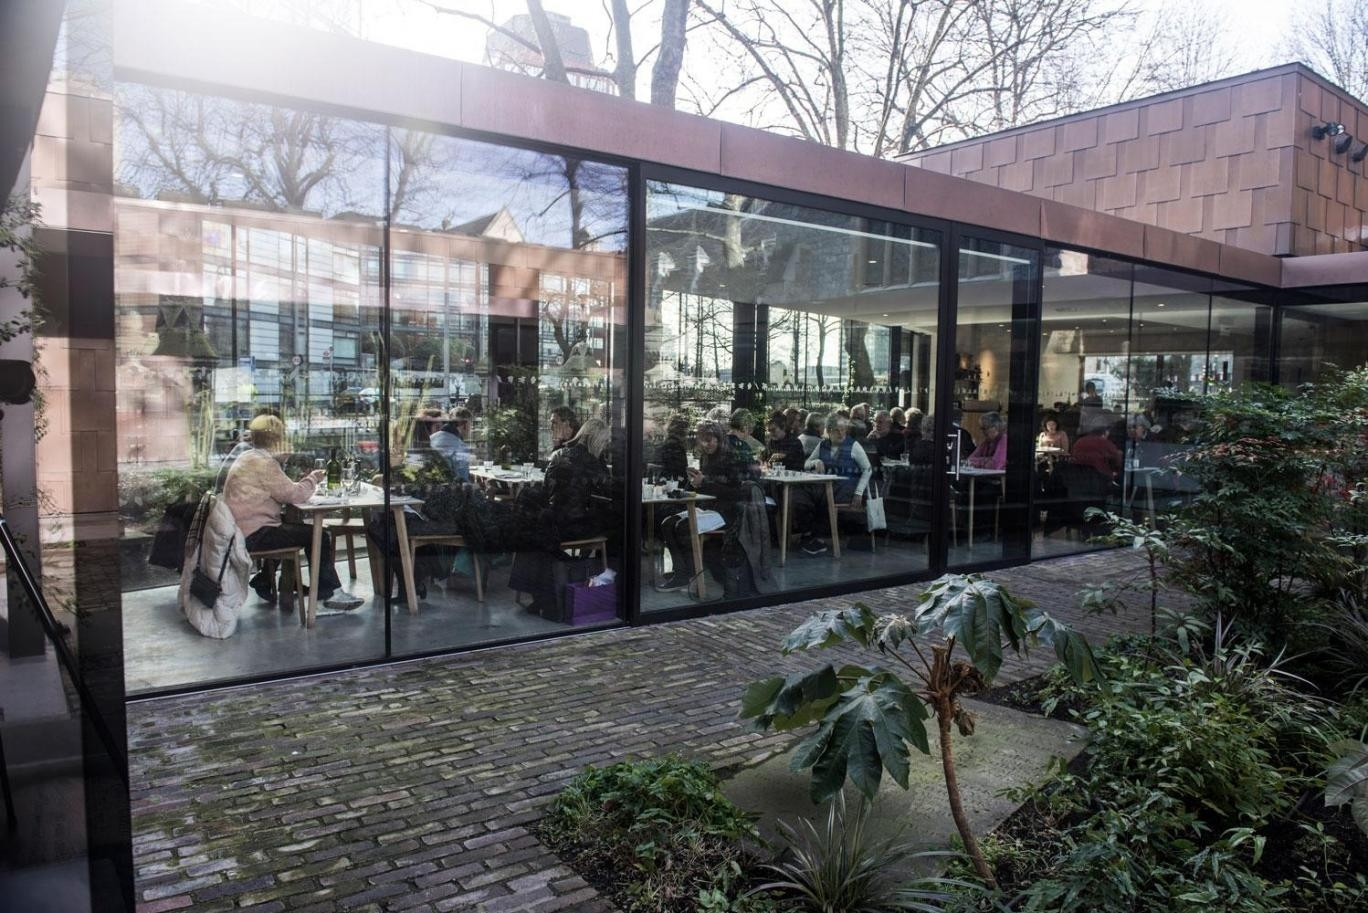 The Garden Café Review: A Leafy Enclave To Treasure In Lambeth within Garden House Restaurant Motor City